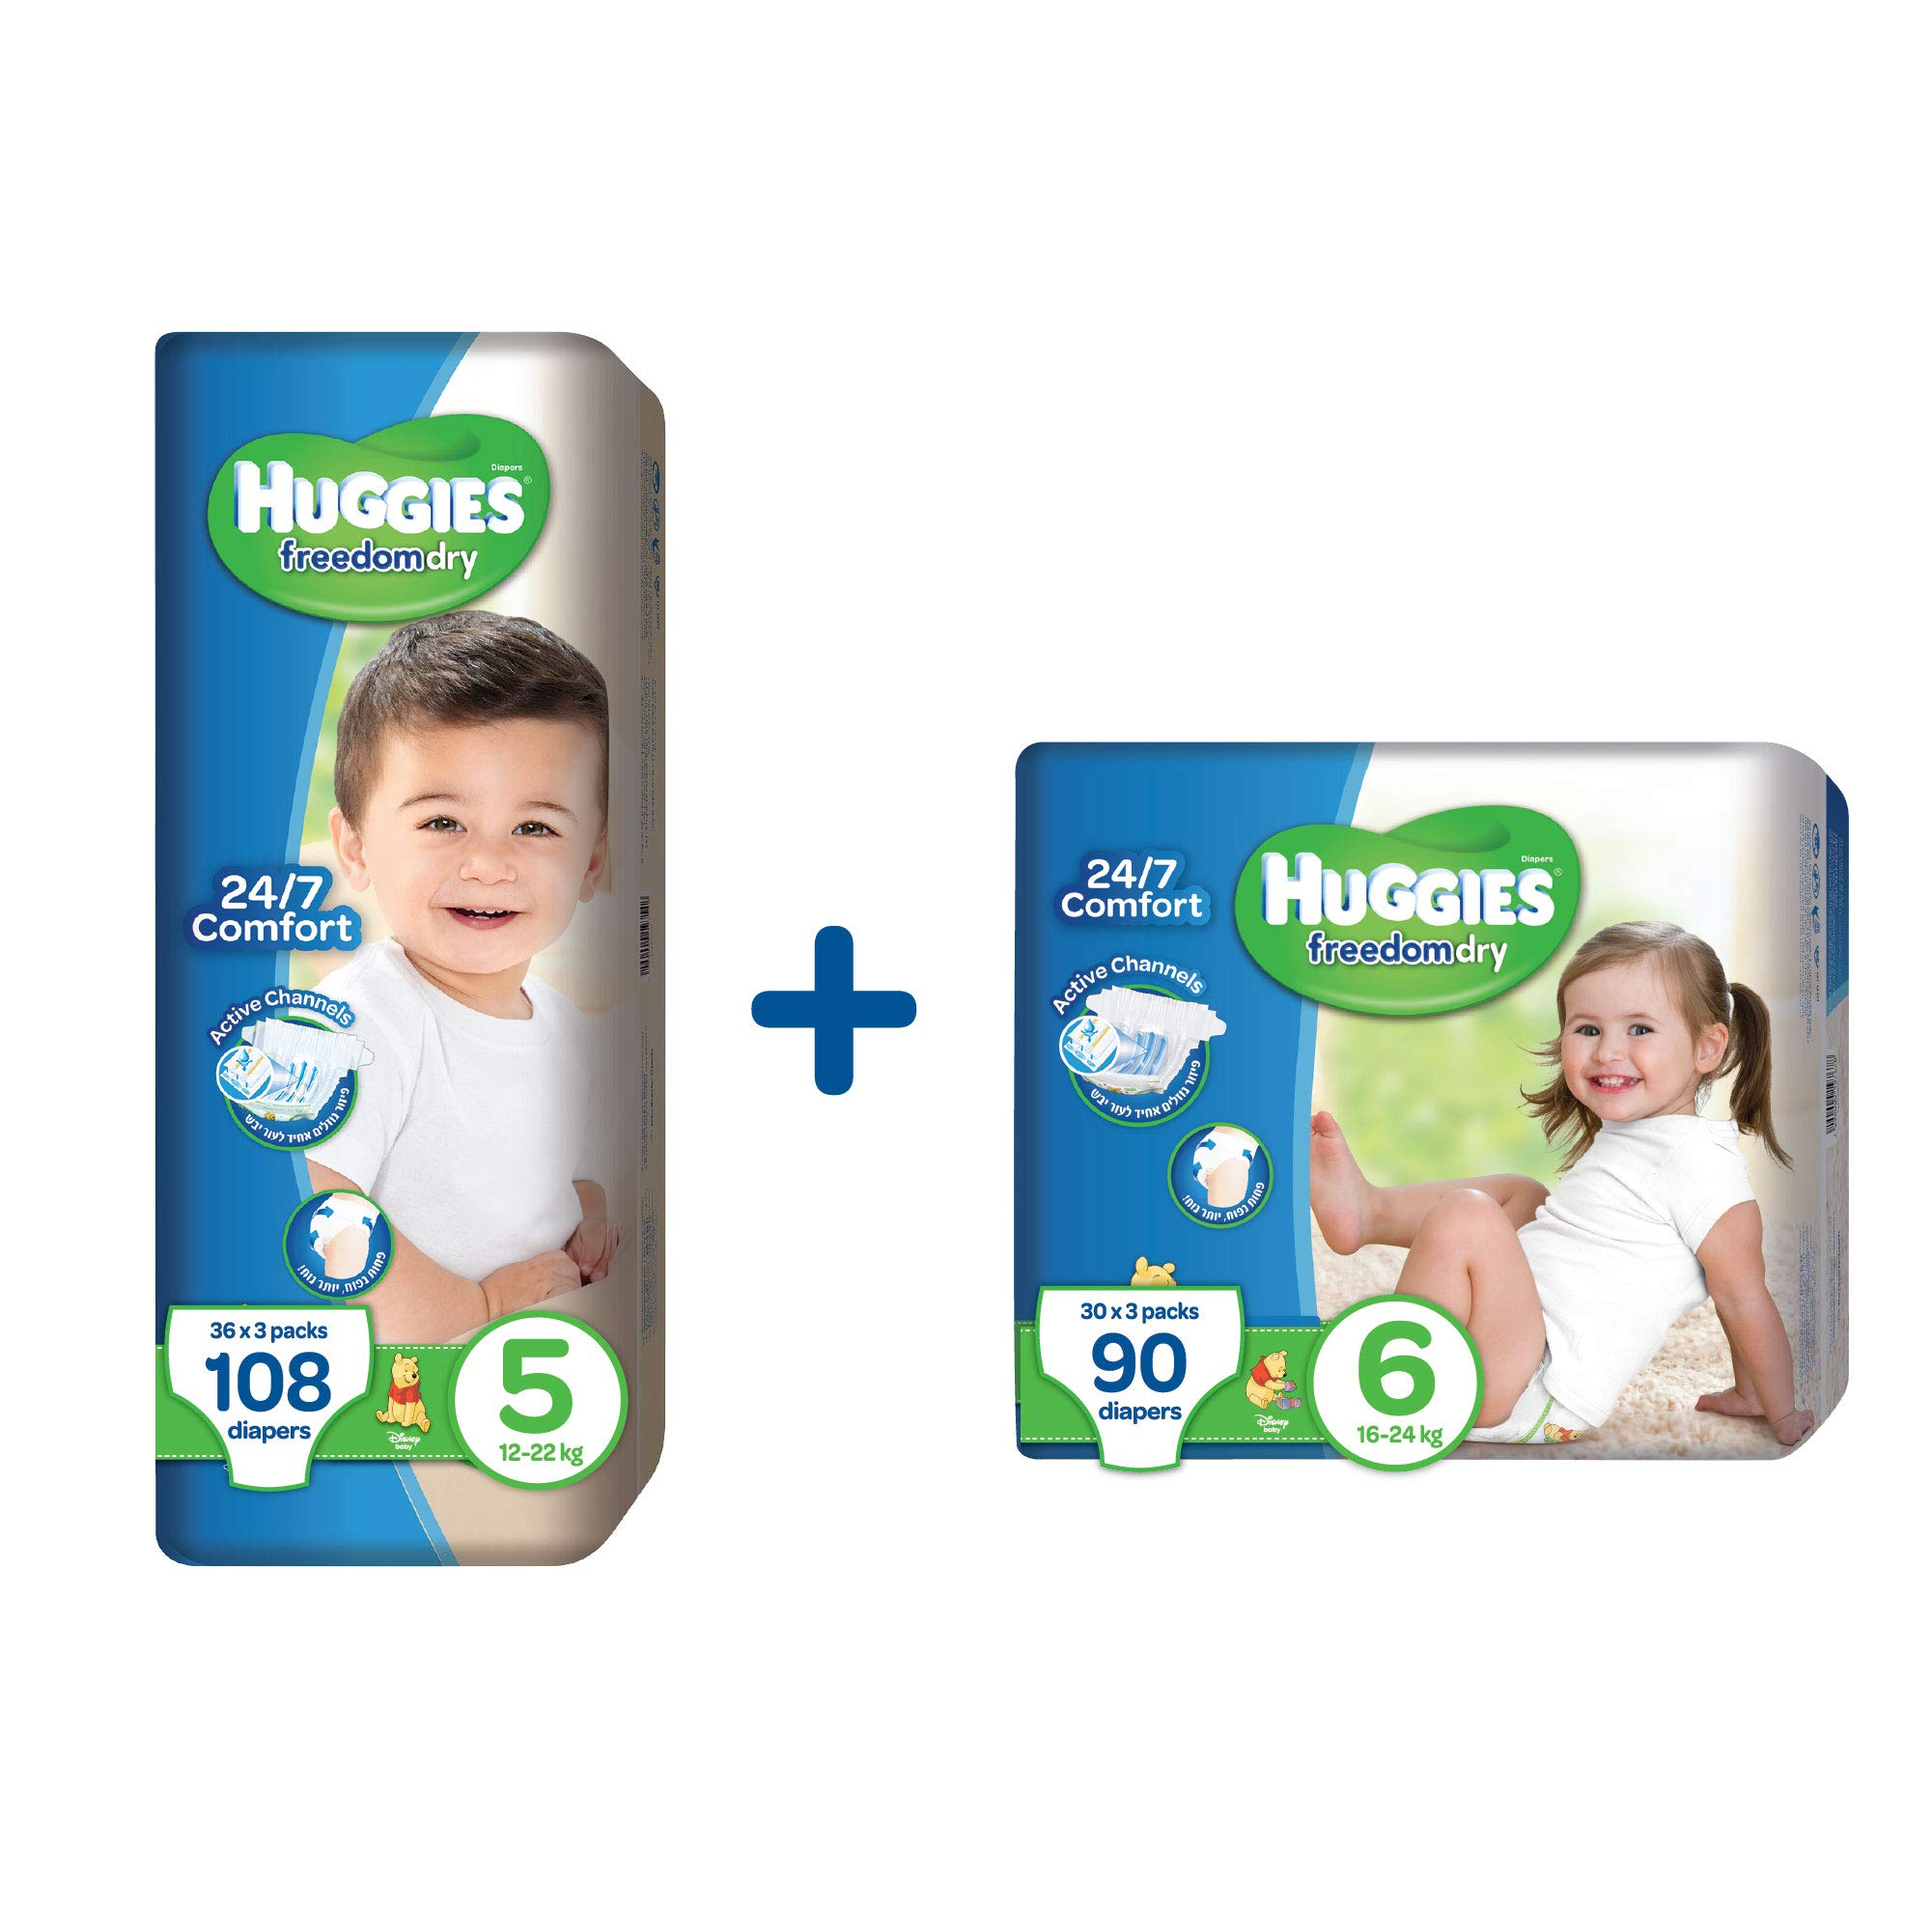 Huggies Freedom Dry Baby Diapers Size 5 (3 x 36 Units, 12-22 KG) + Size 6 (3 x 30 Units 16-24 KG), Total 198 Units (6 Pack Total)